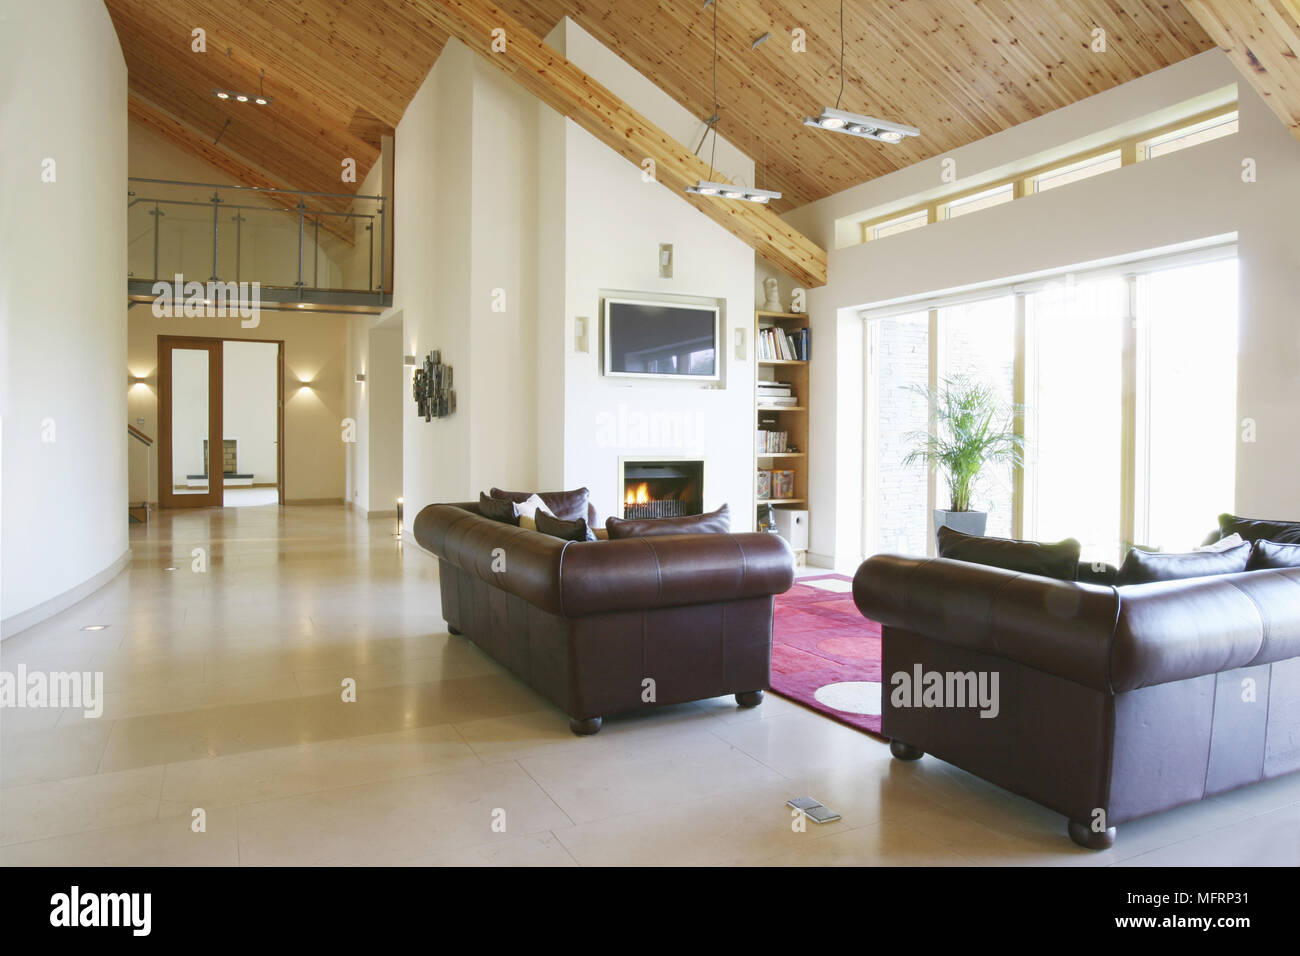 Pair Of Leather Sofas In Front Of Fireplace With Lit Fire In